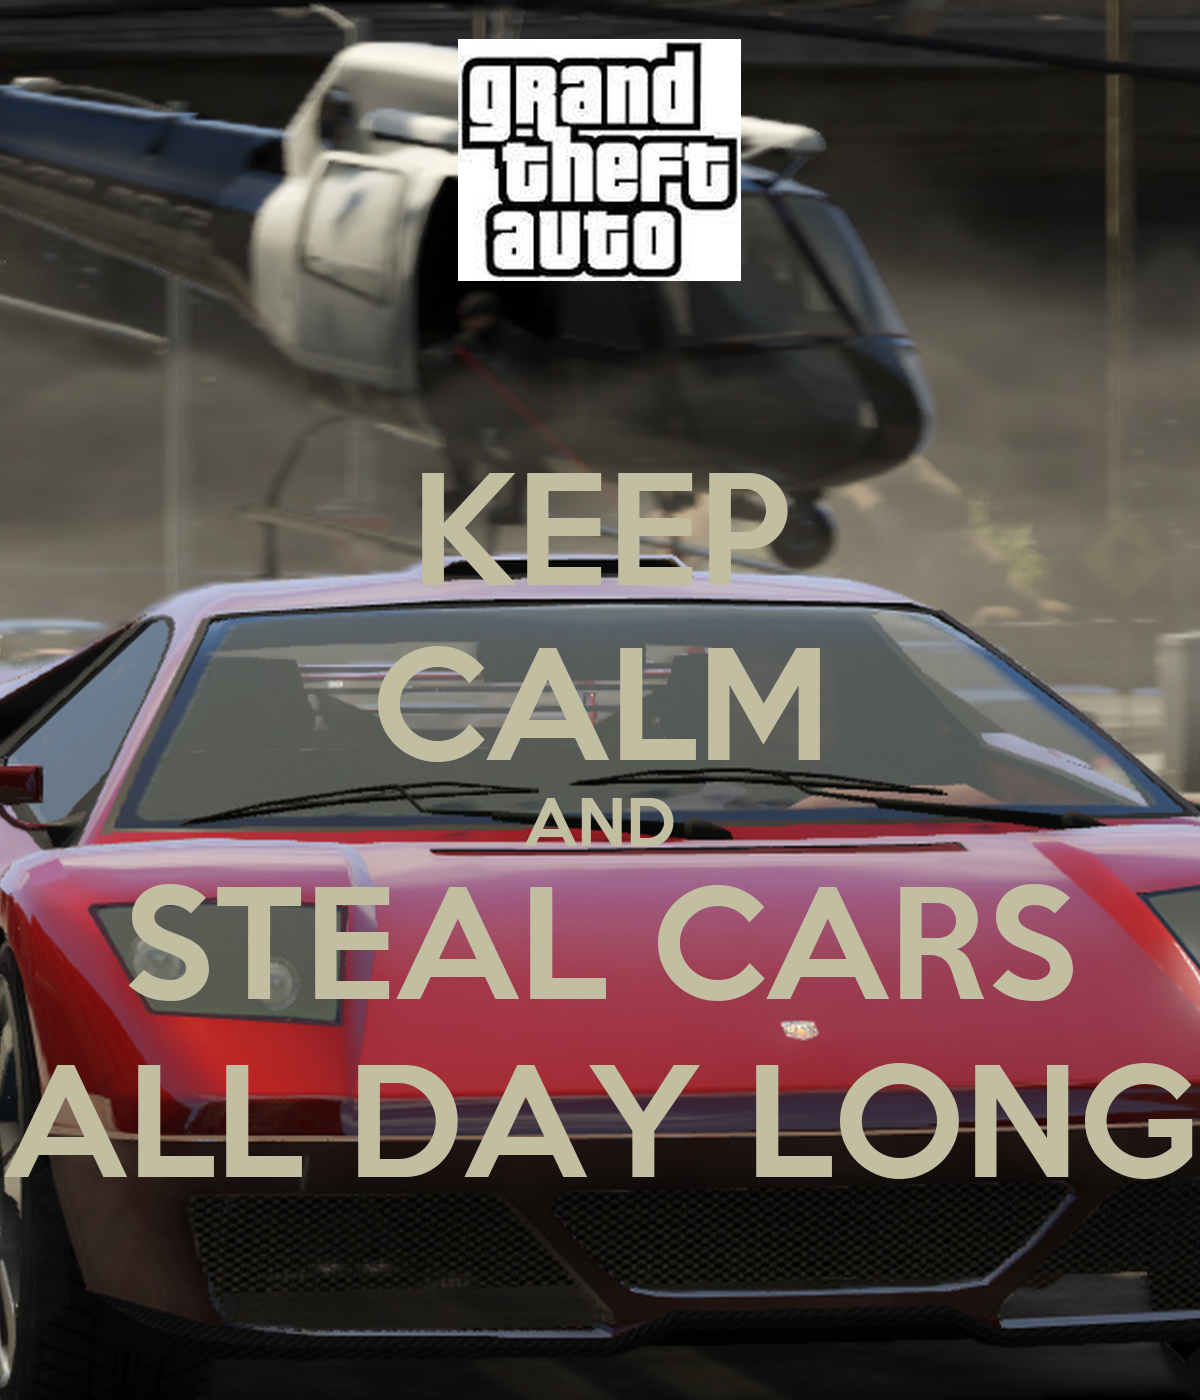 KEEP CALM AND STEAL CARS ALL DAY LONG Poster